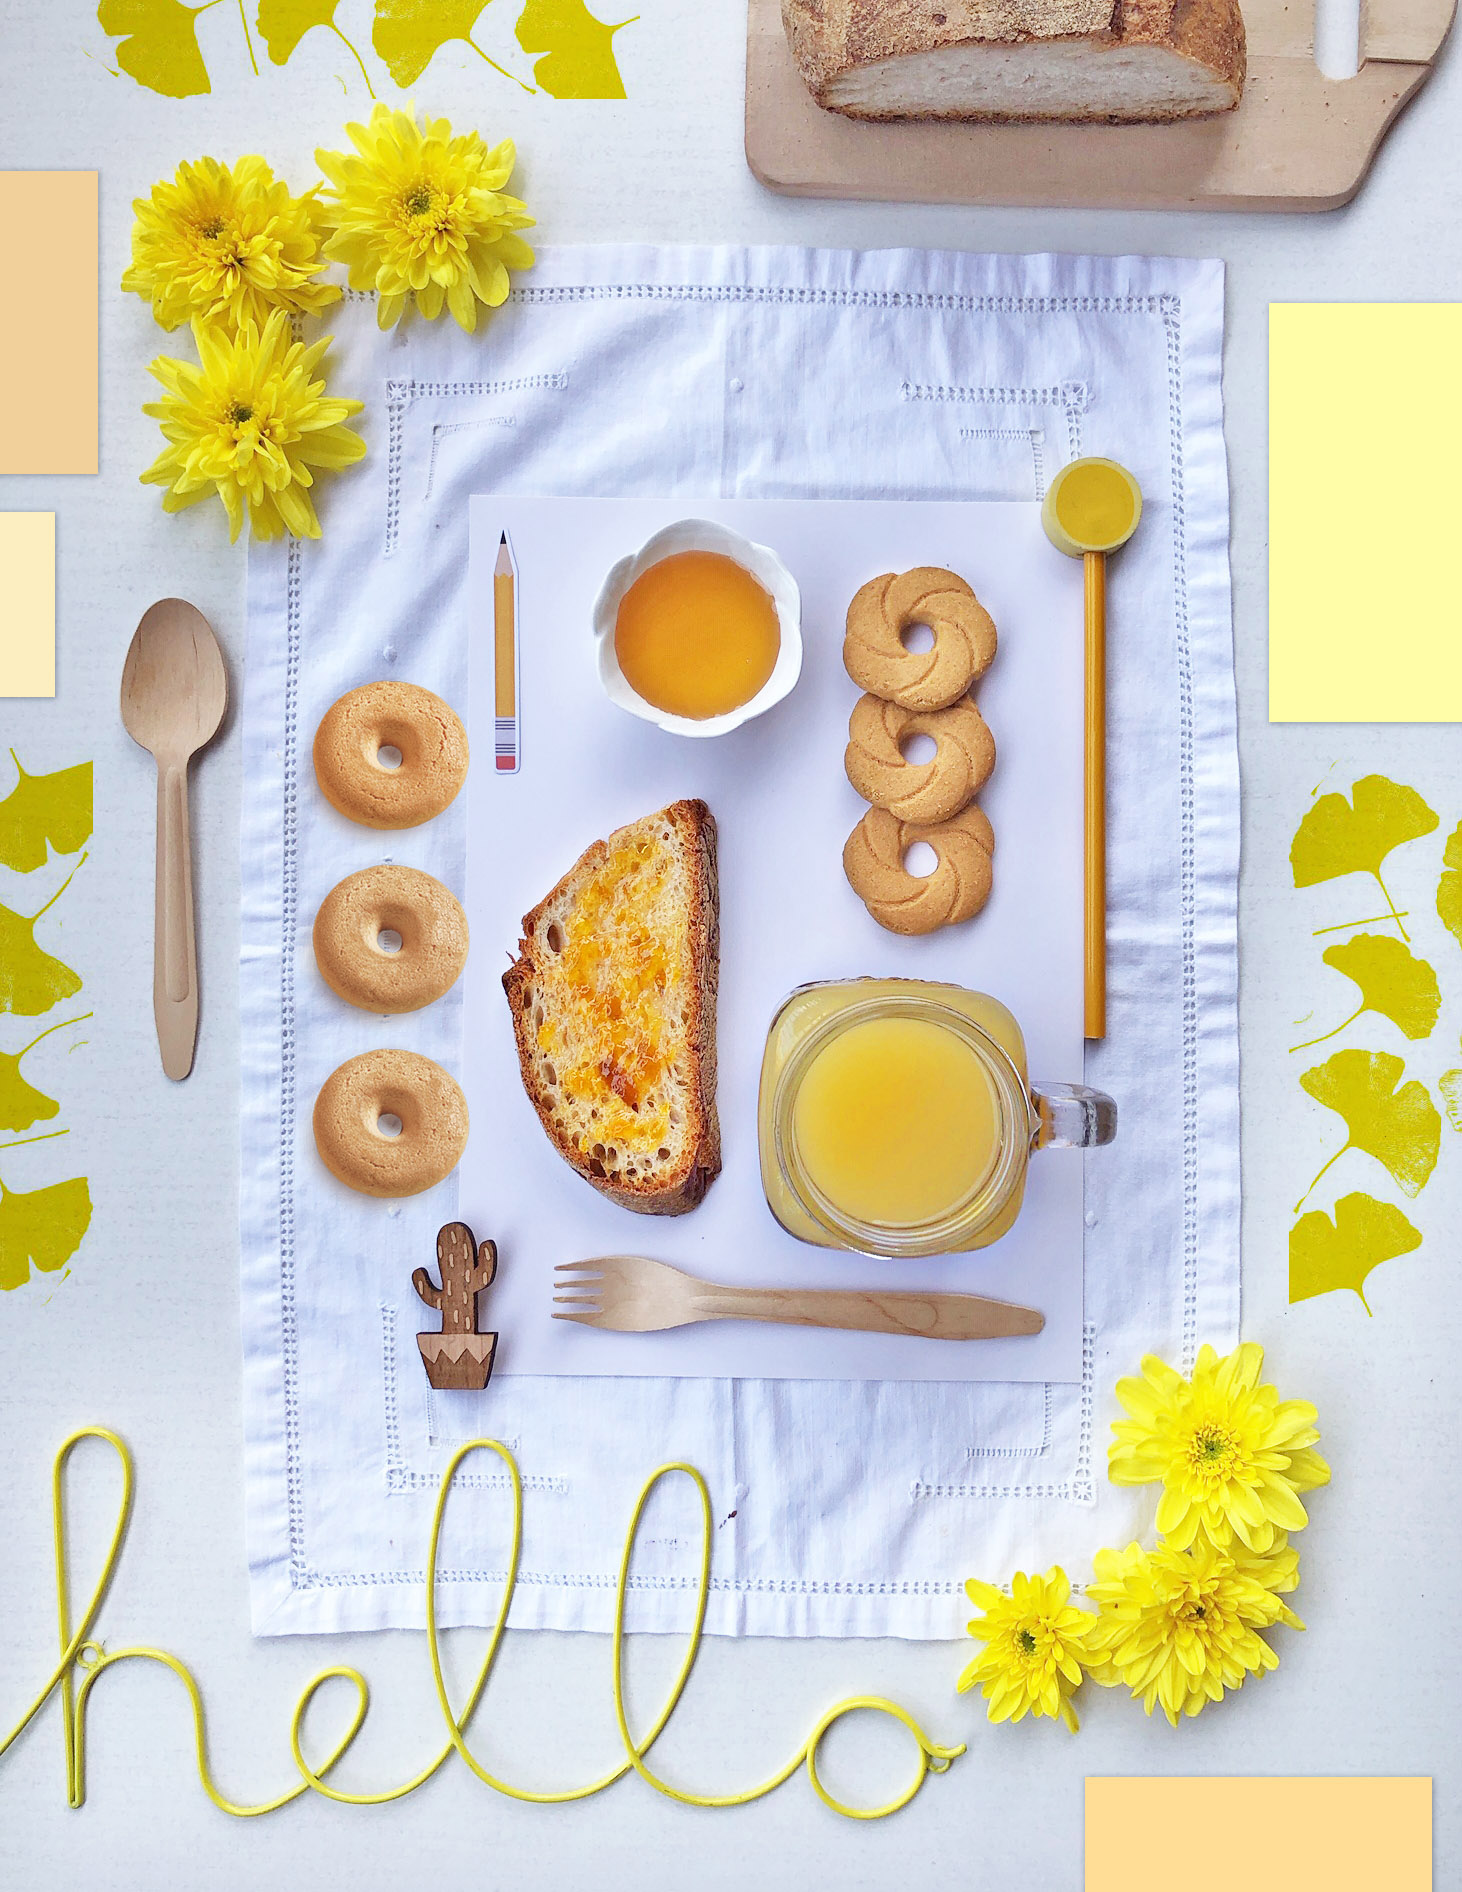 6_-colazione-in-giallo_-cr-breakfast-and-coffee